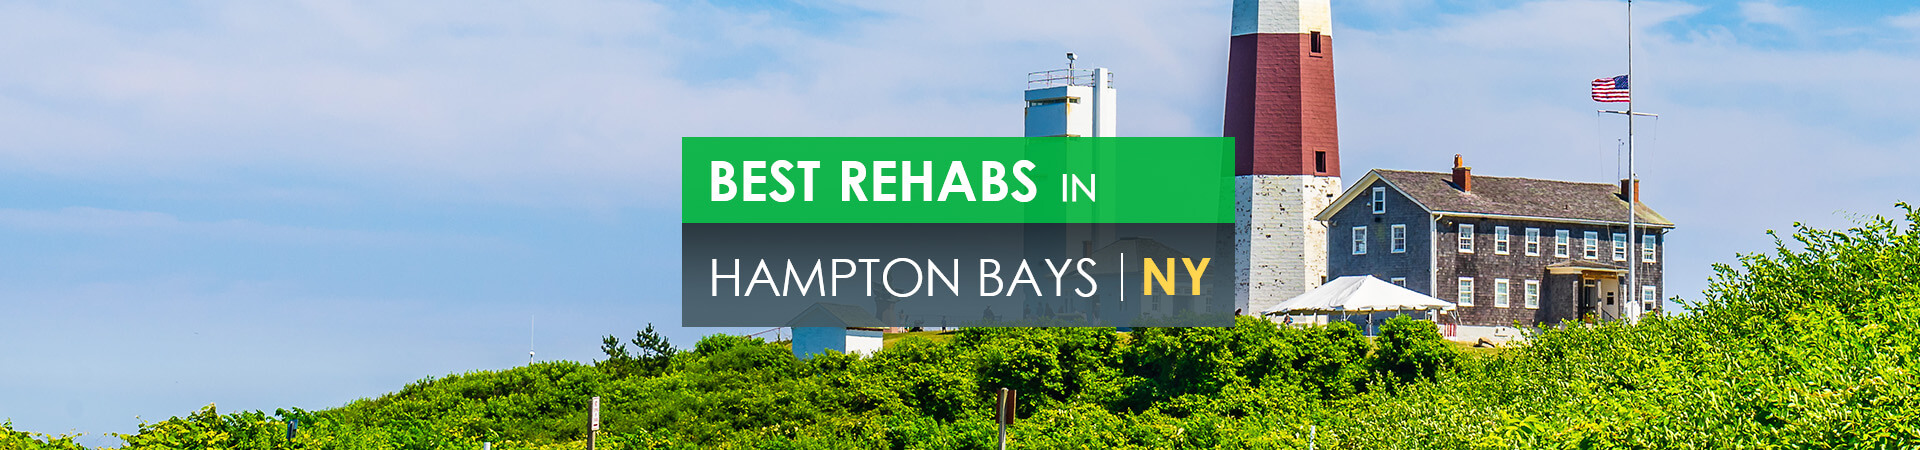 Best rehabs in Hampton Bays, NY